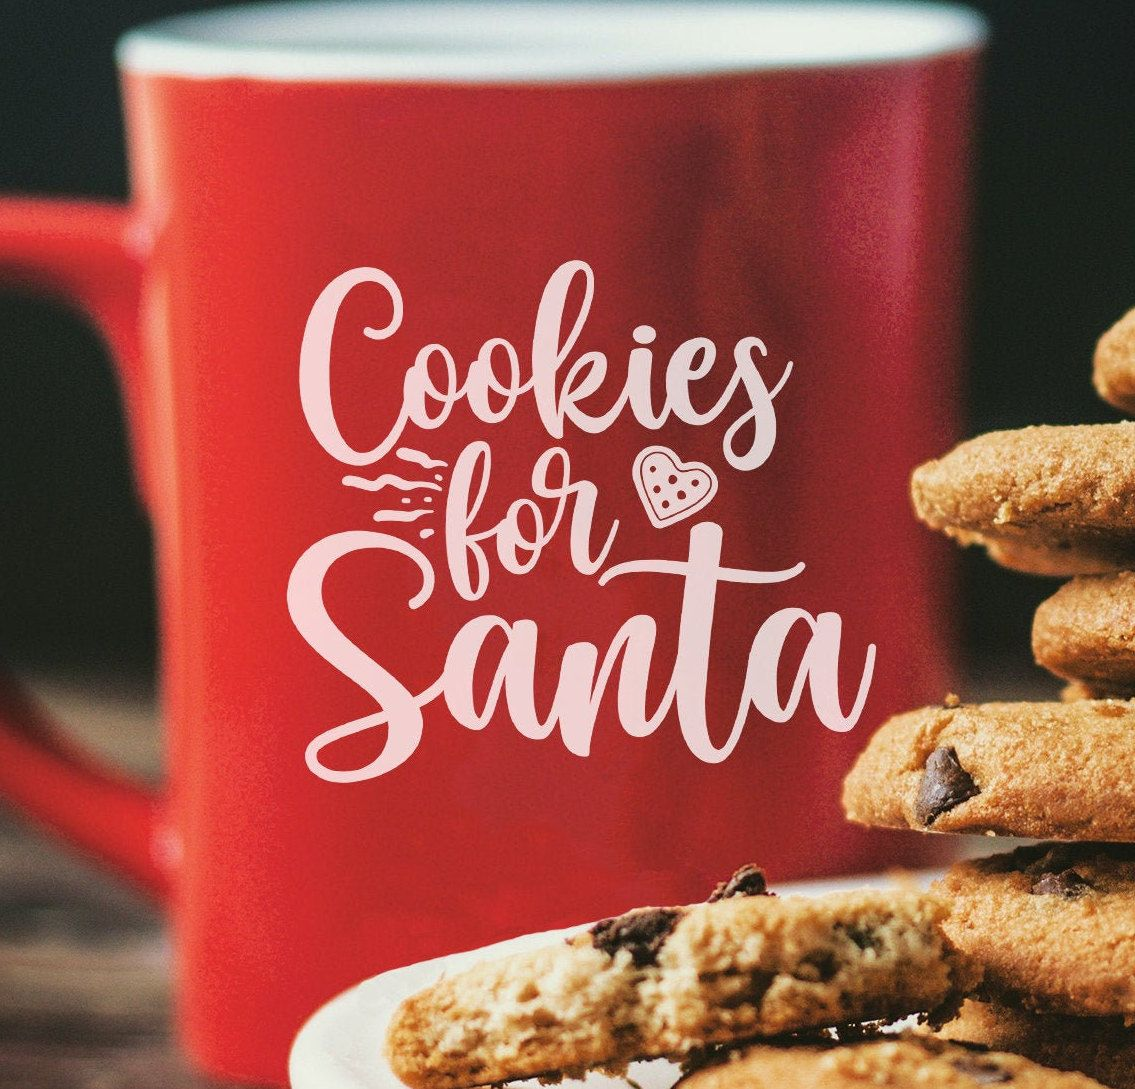 Cookies For Santa Svg Cookies Svgsanta Svgchristmas Etsy In 2020 Christmas Svg Christmas Prints Holiday Prints